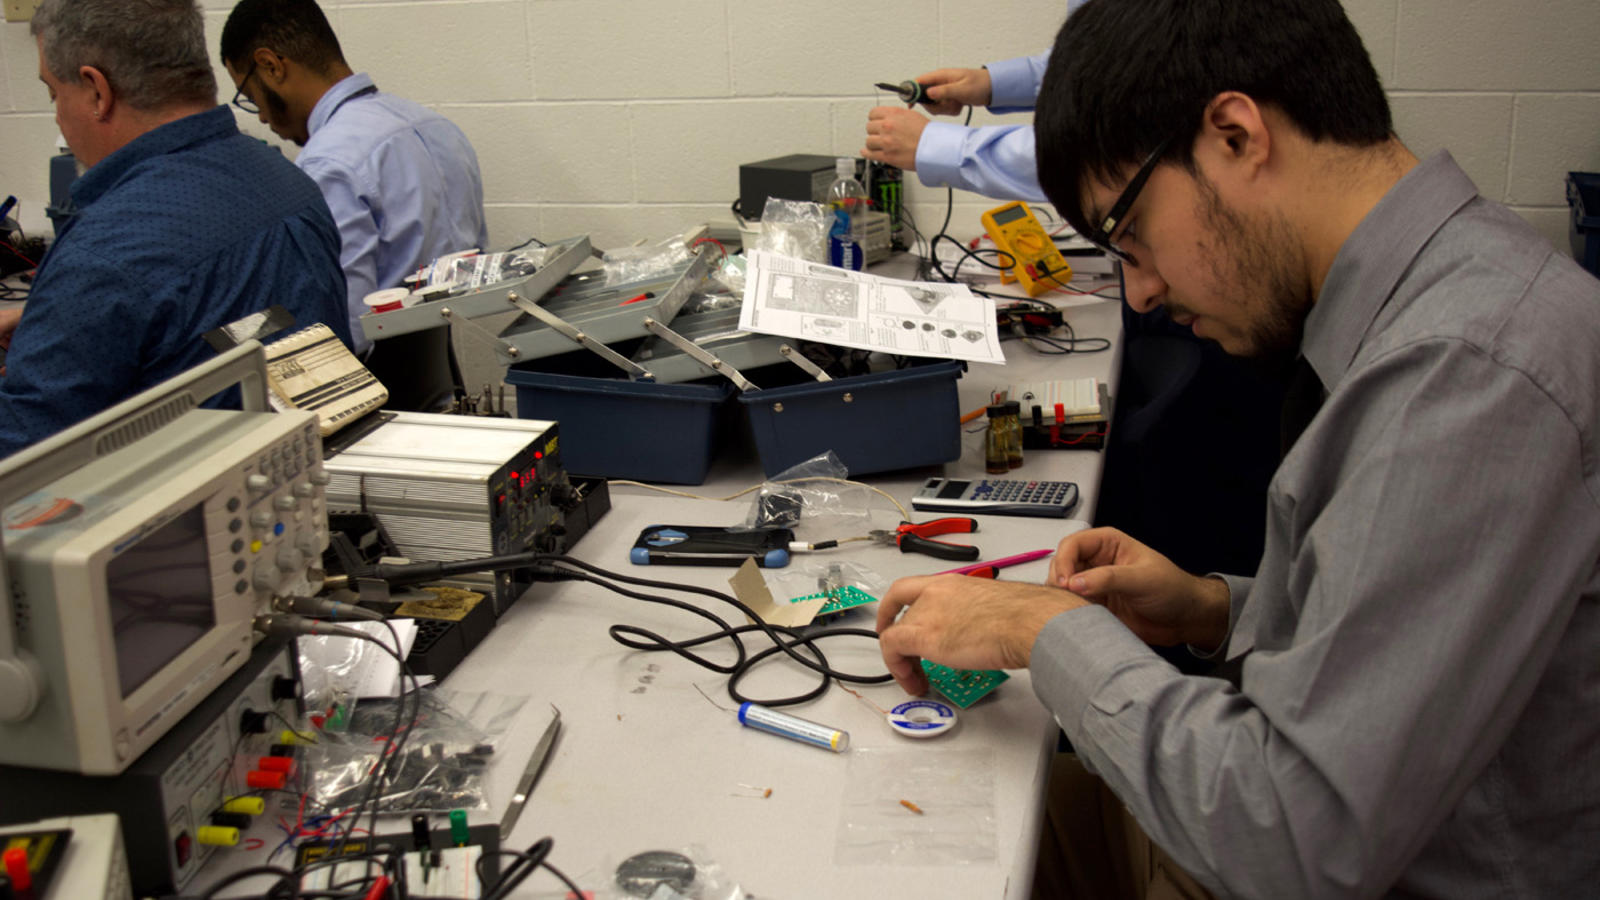 An Allentown electronics tech student prepares a circuit board for soldering.